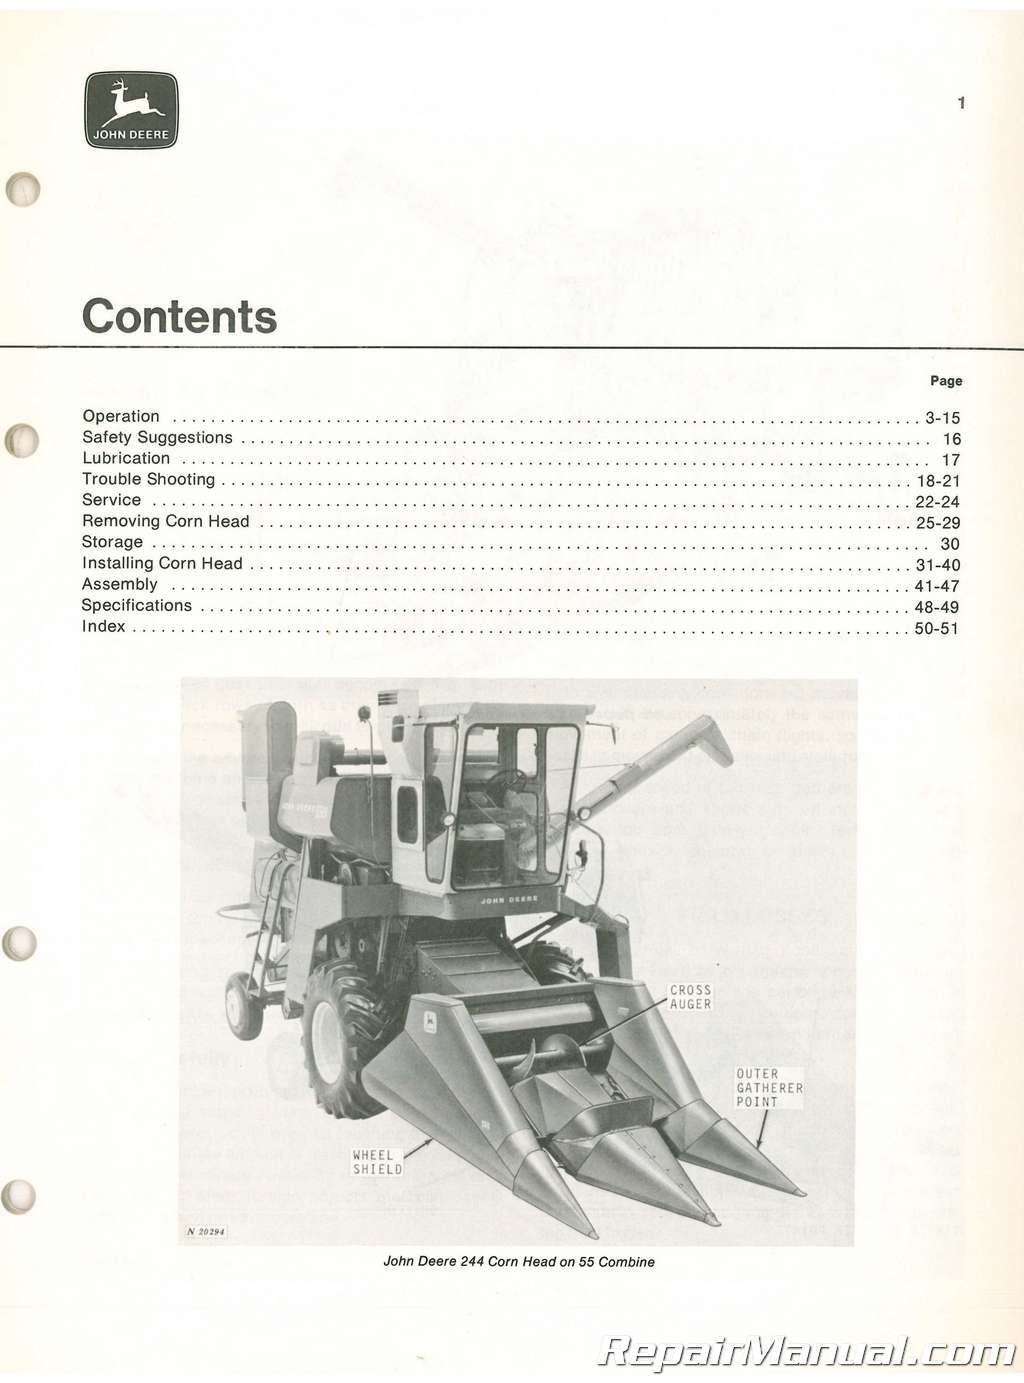 Used John Deere 244 and 343 Corn Heads Operators Manual